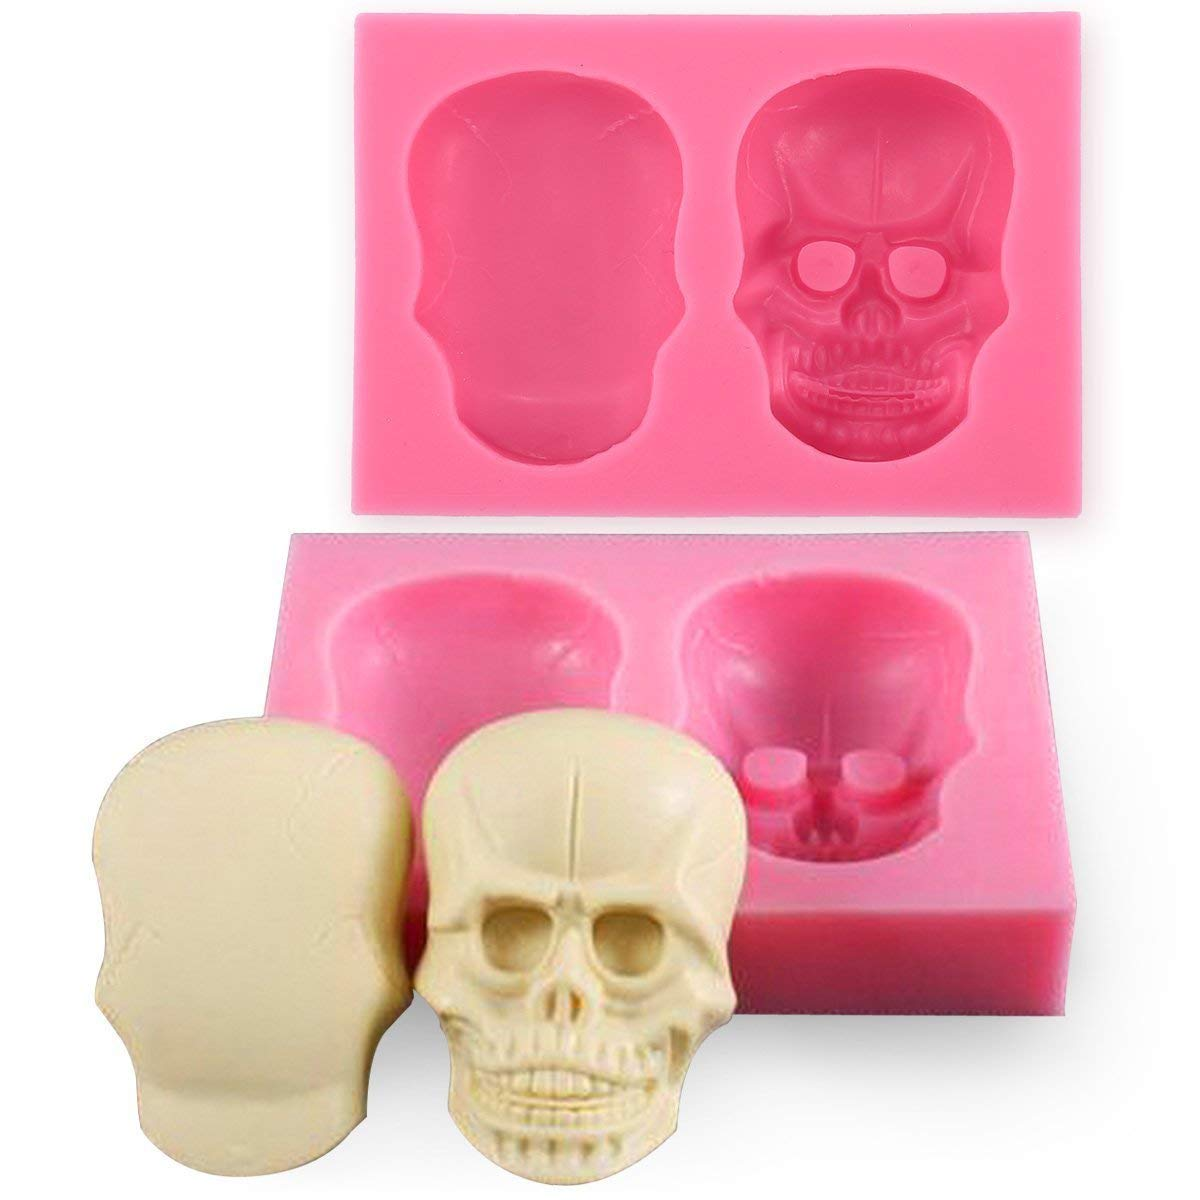 3D Skull Silicone Mould Cake Fondant Mold Halloween Party CupcakeTopper Decoration Chocolate Biscuit Sugarcraft Mold Icing Decor Baking Tool Jona Fun